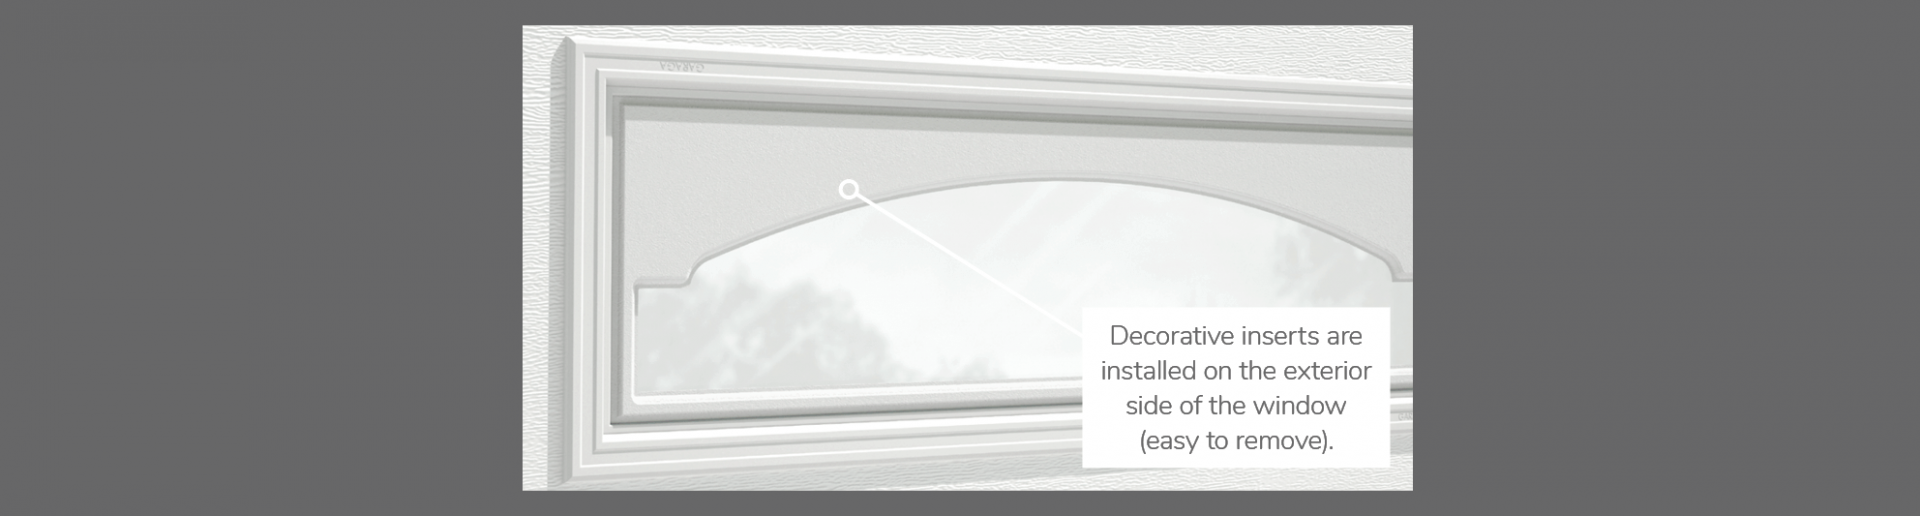 "Cathedral Decorative Insert, 40"" x 13"", available for door R-16, R-12, 2 layers polystyrene and Non-insulated"